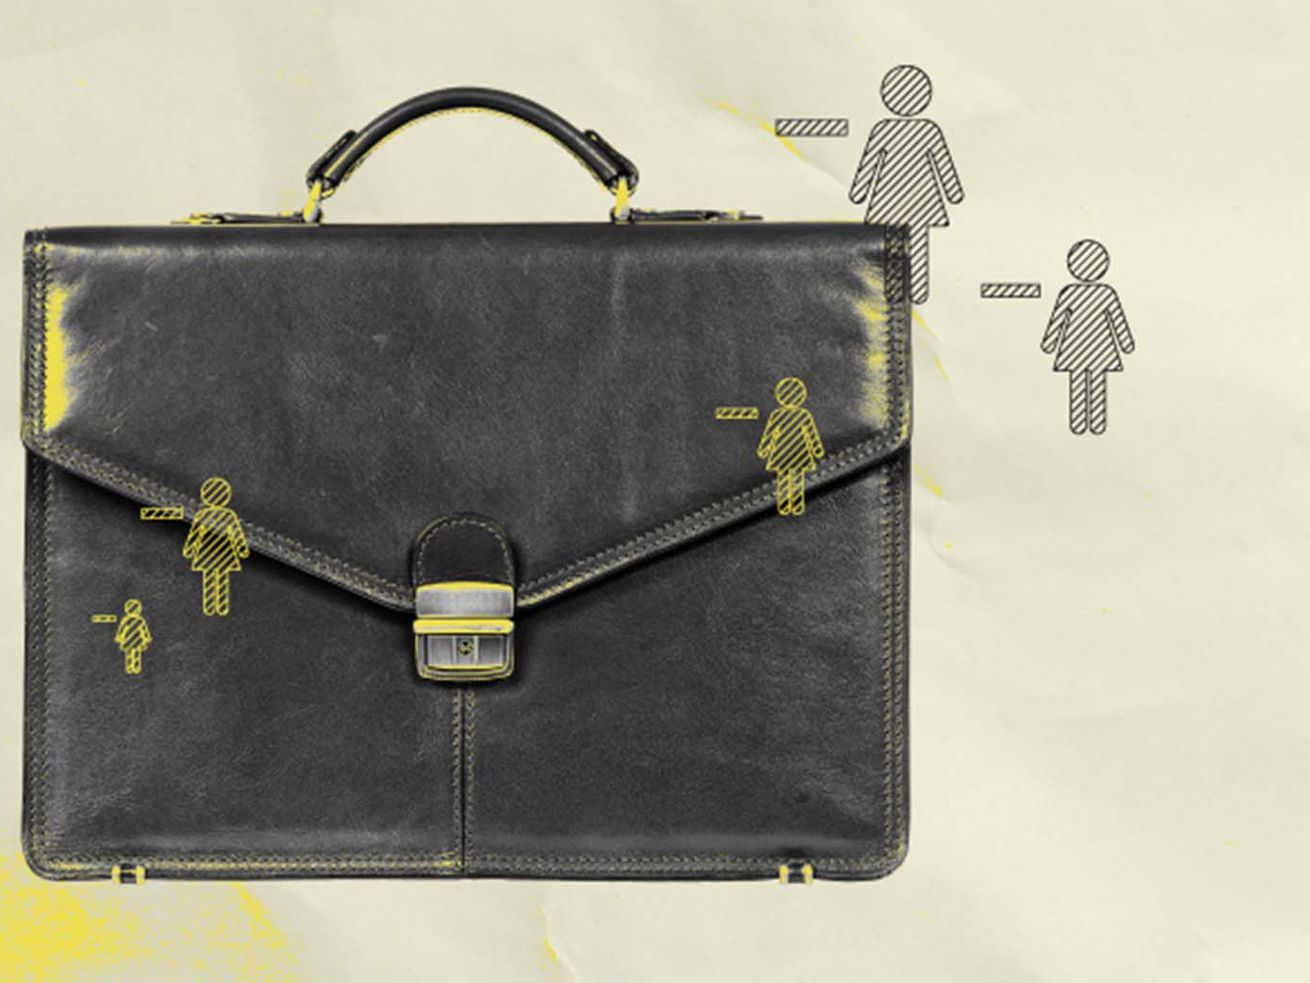 An uncertain future for working women and moms